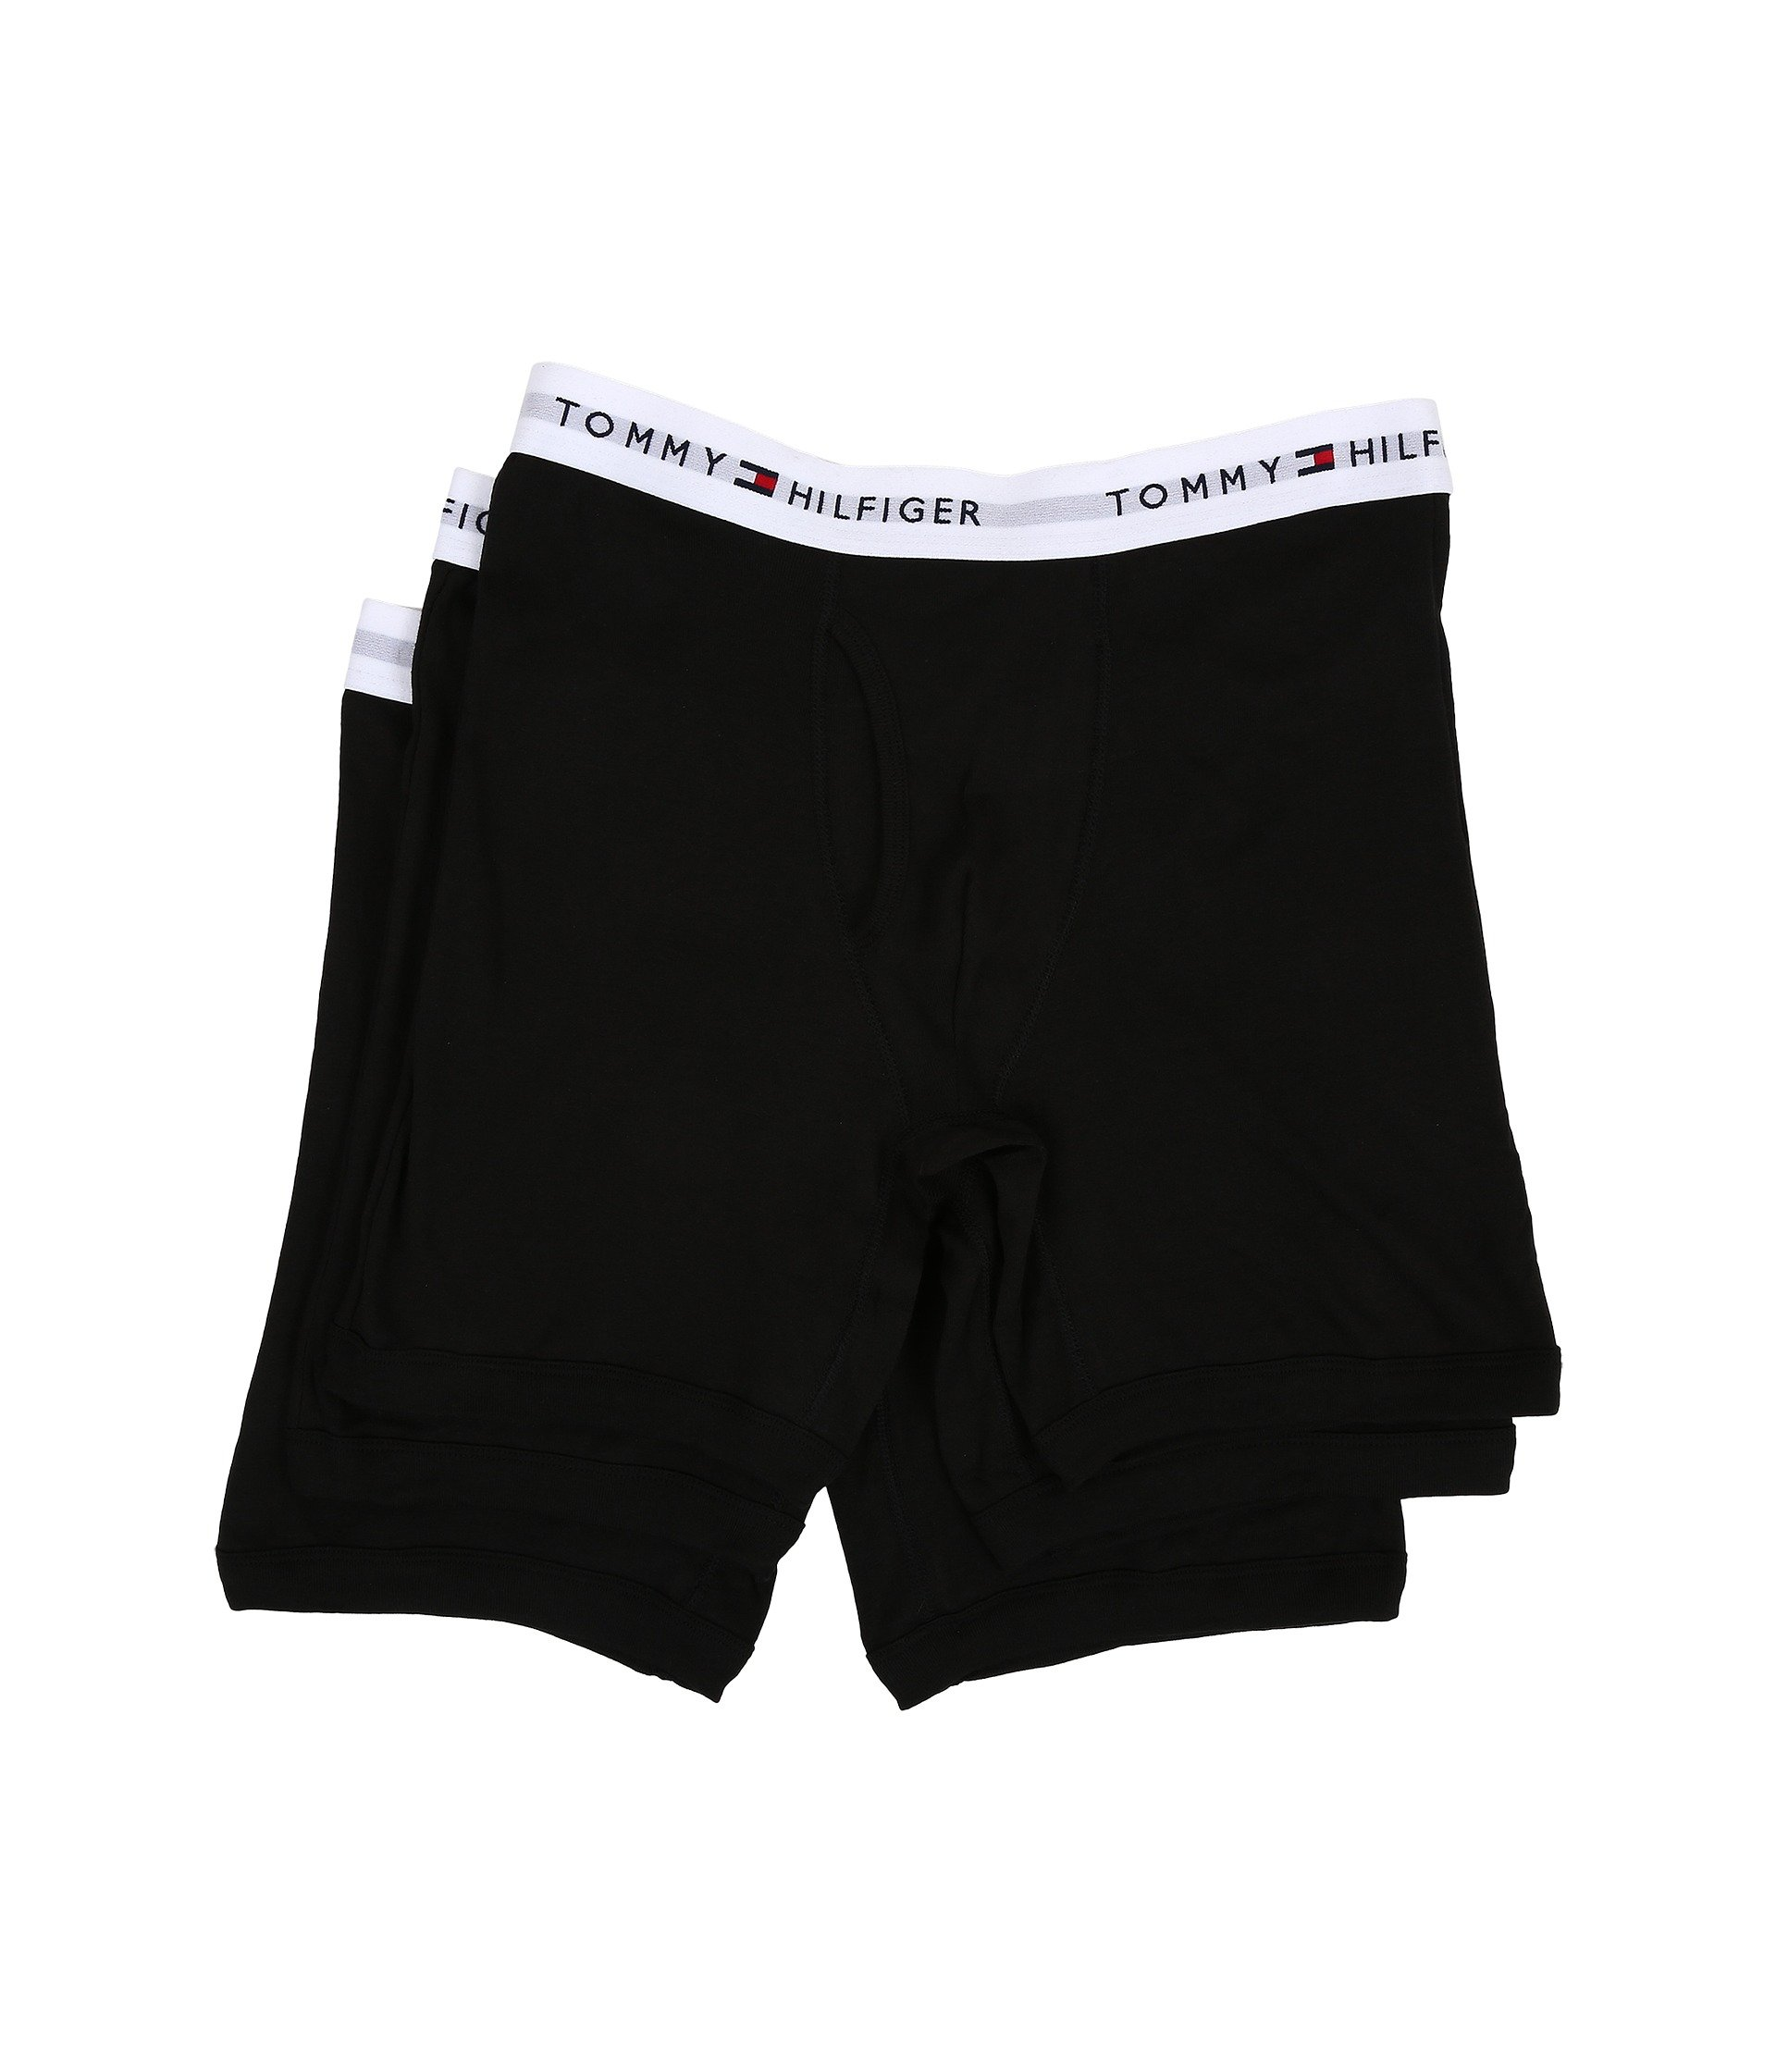 292dfd9dd585cd Black. 205. Tommy Hilfiger. Cotton Boxer Brief 3-Pack. $27.94. 4Rated 4  stars out of 5. Vibrant Royal. 181